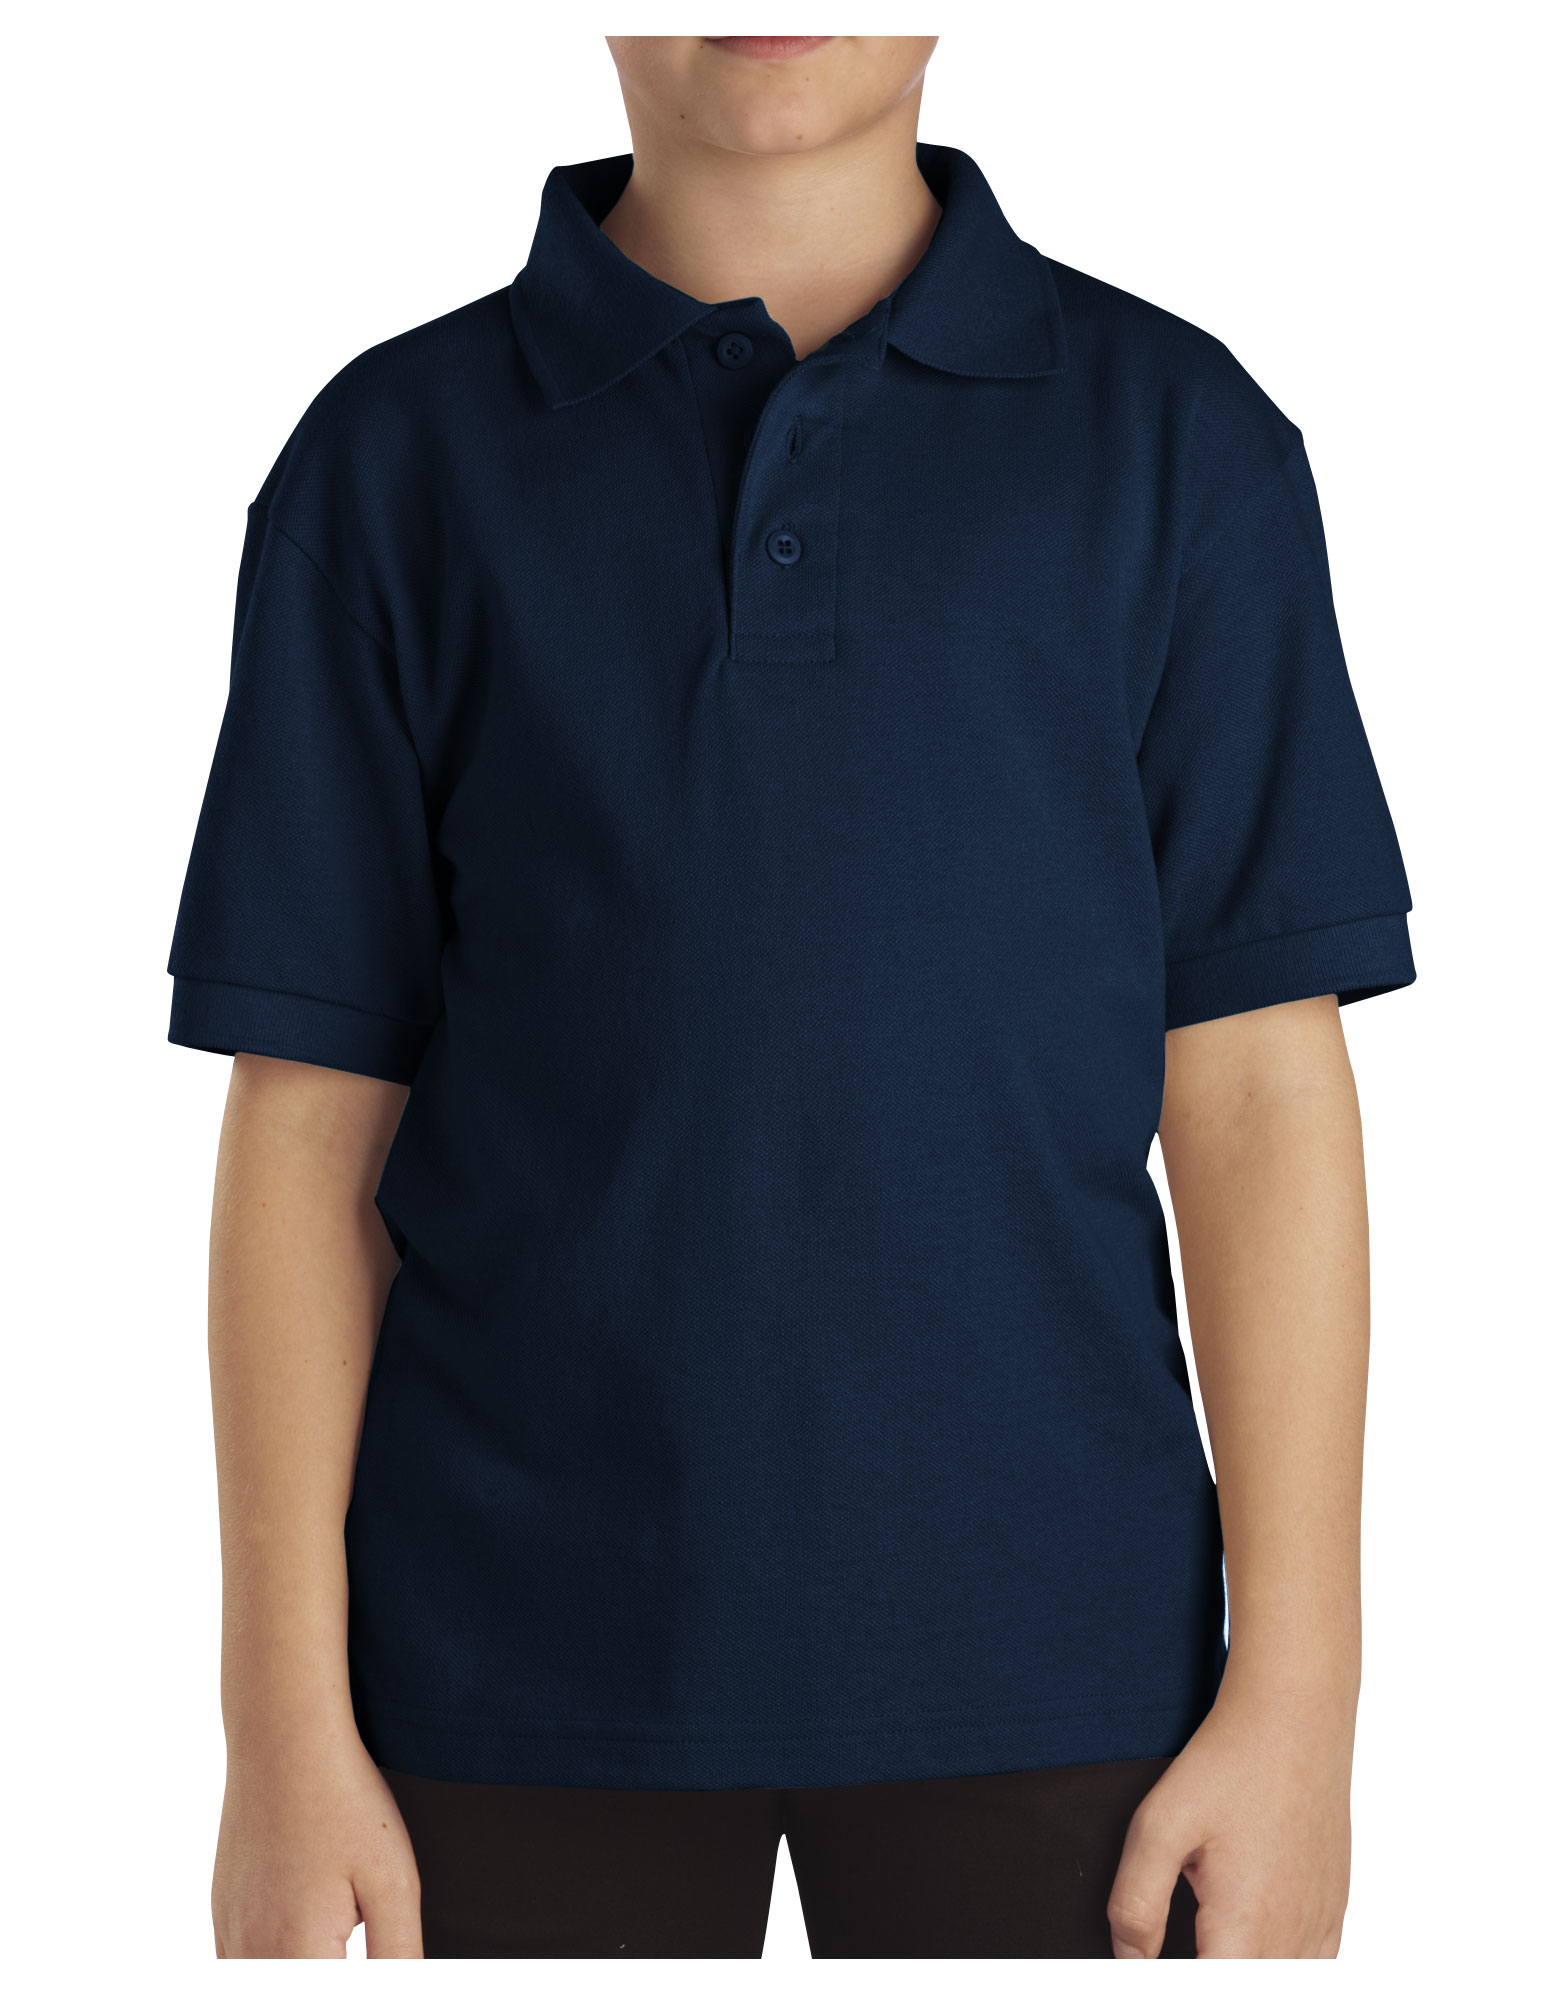 Kids' Short Sleeve Pique Polo Shirt, 4-7 - Dark Navy (DN)